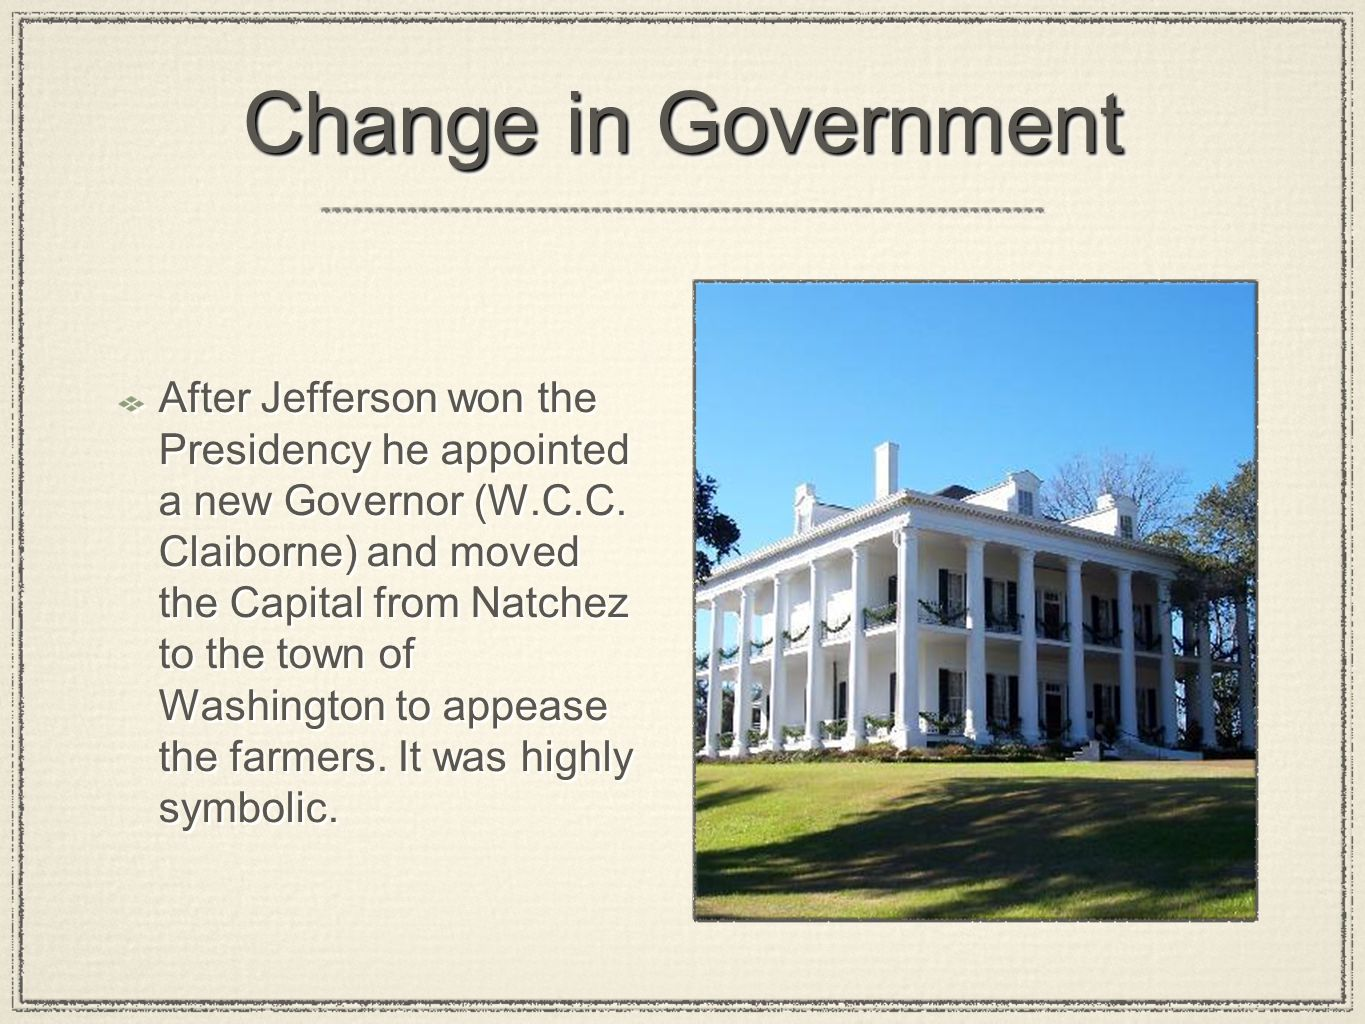 Change in Government